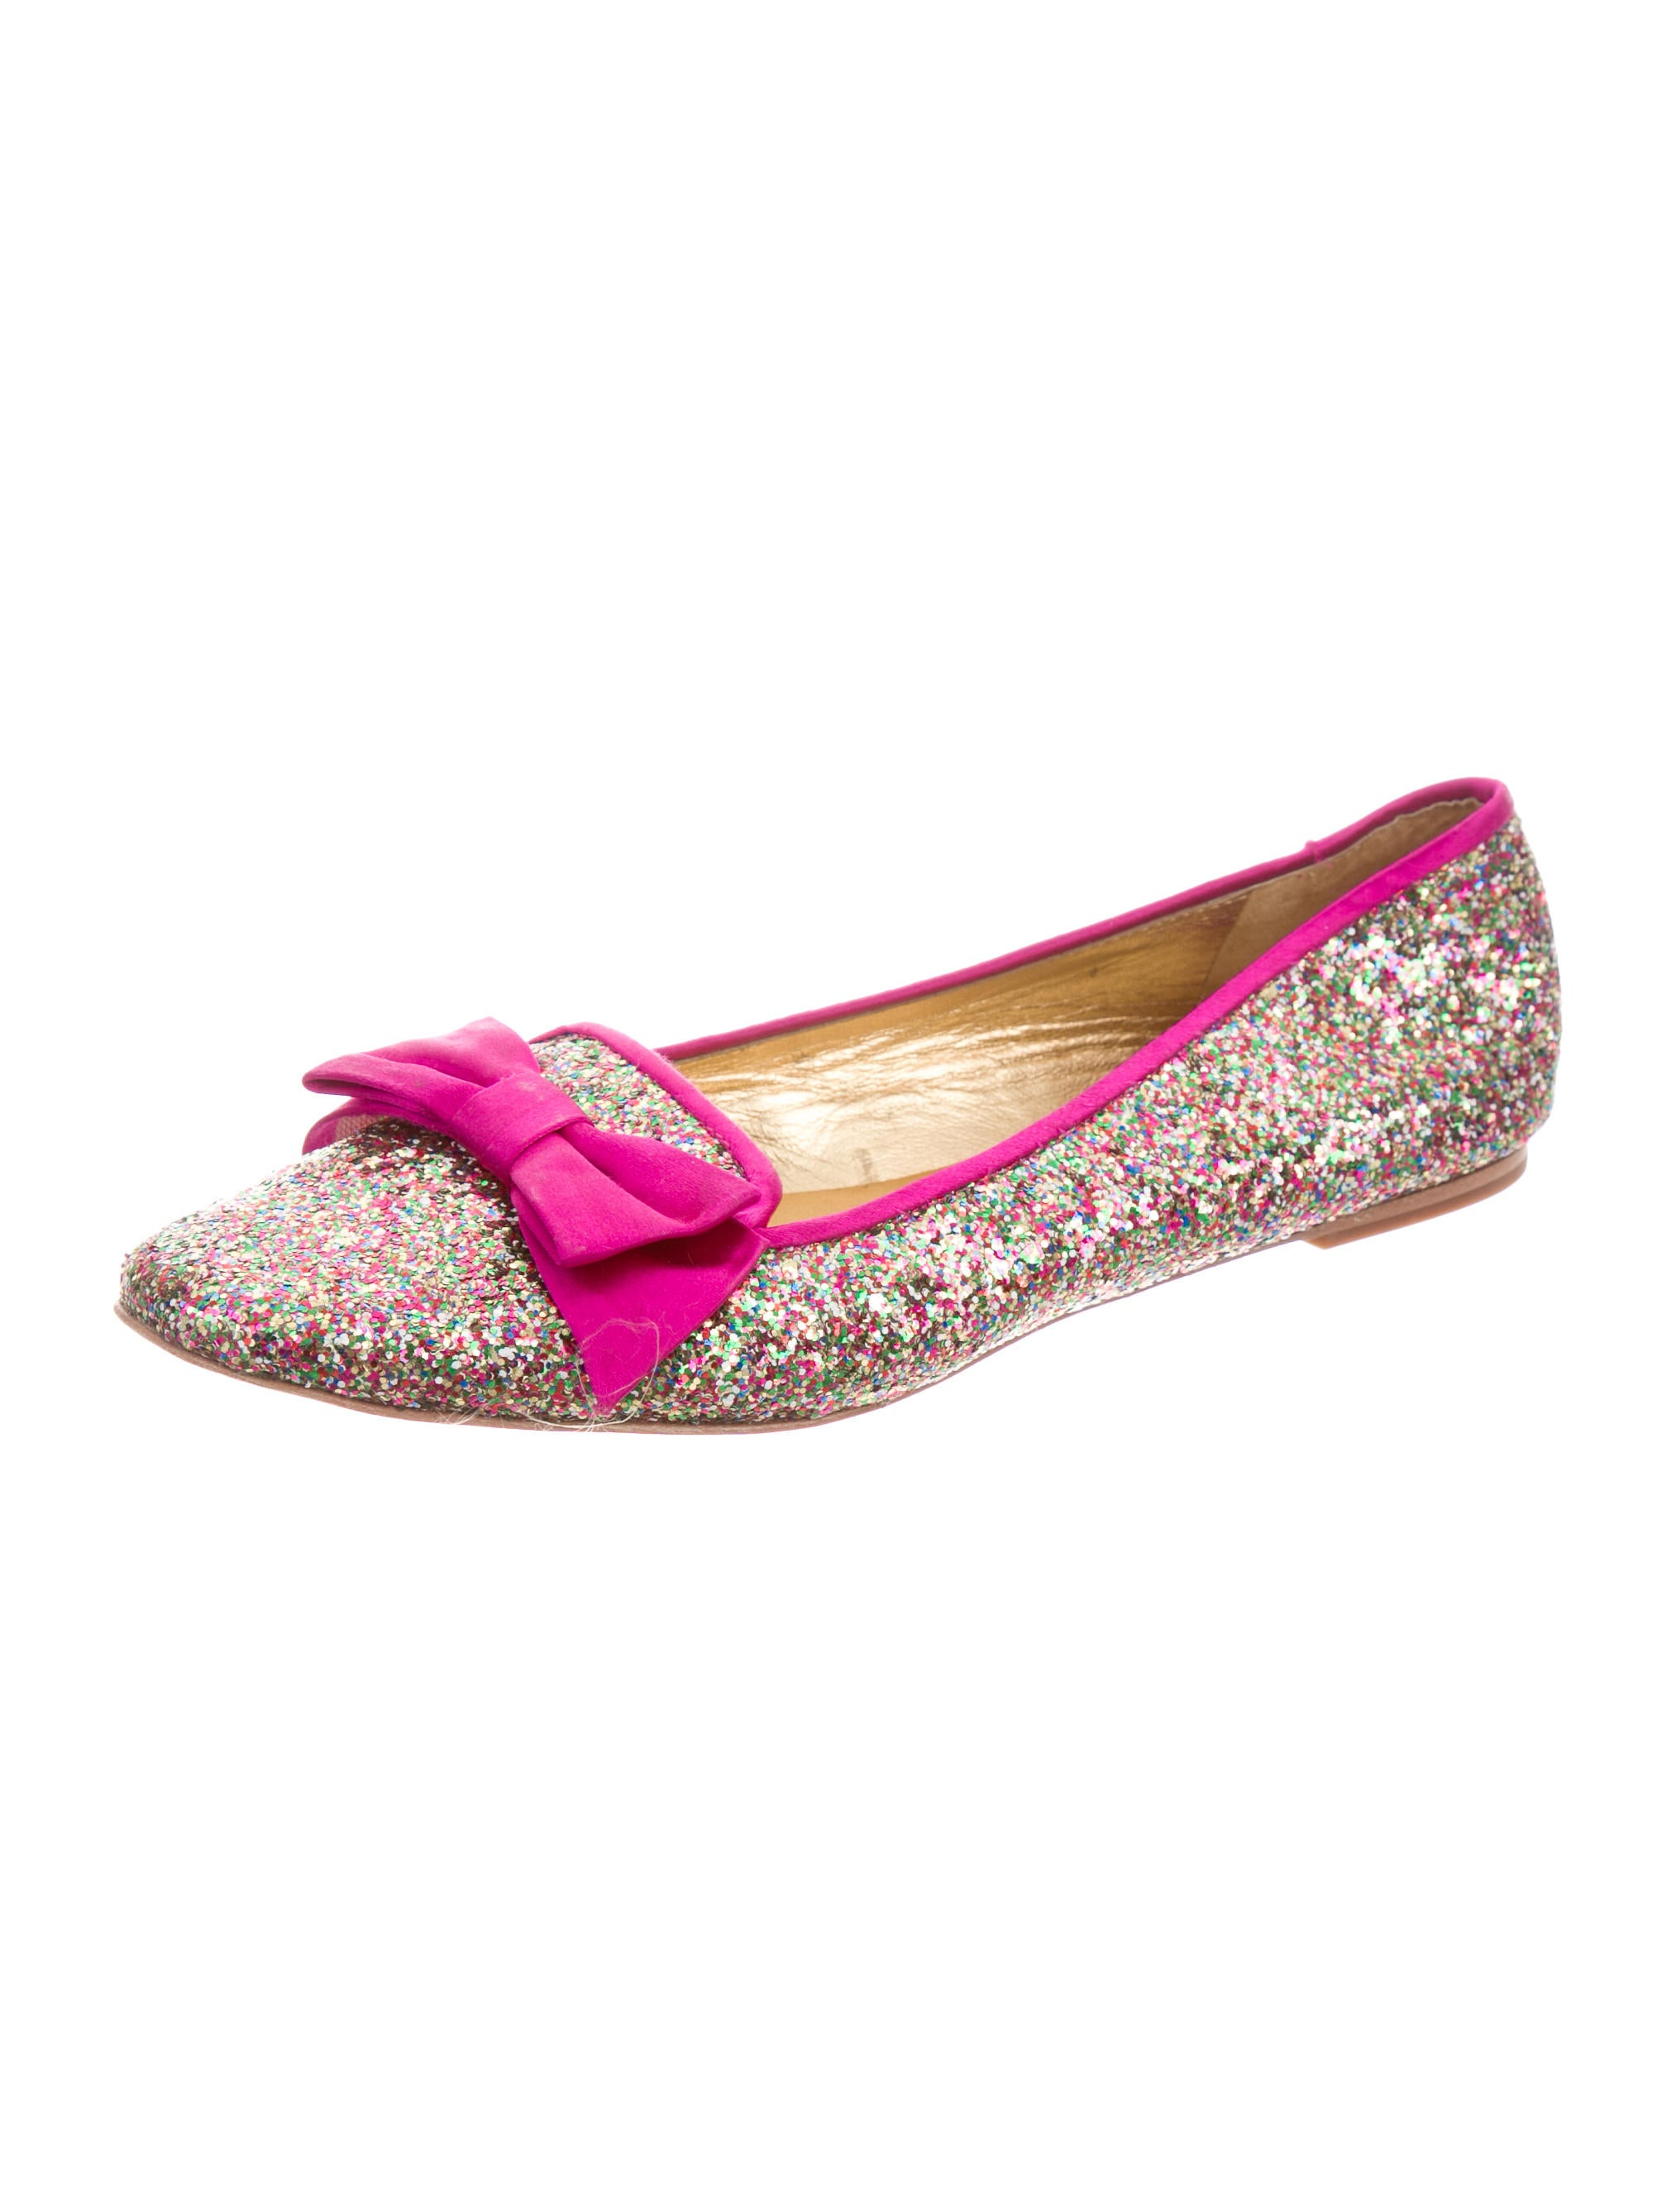 Kate spade new york glitter bow flats shoes wka45647 for Kate spade new york flats